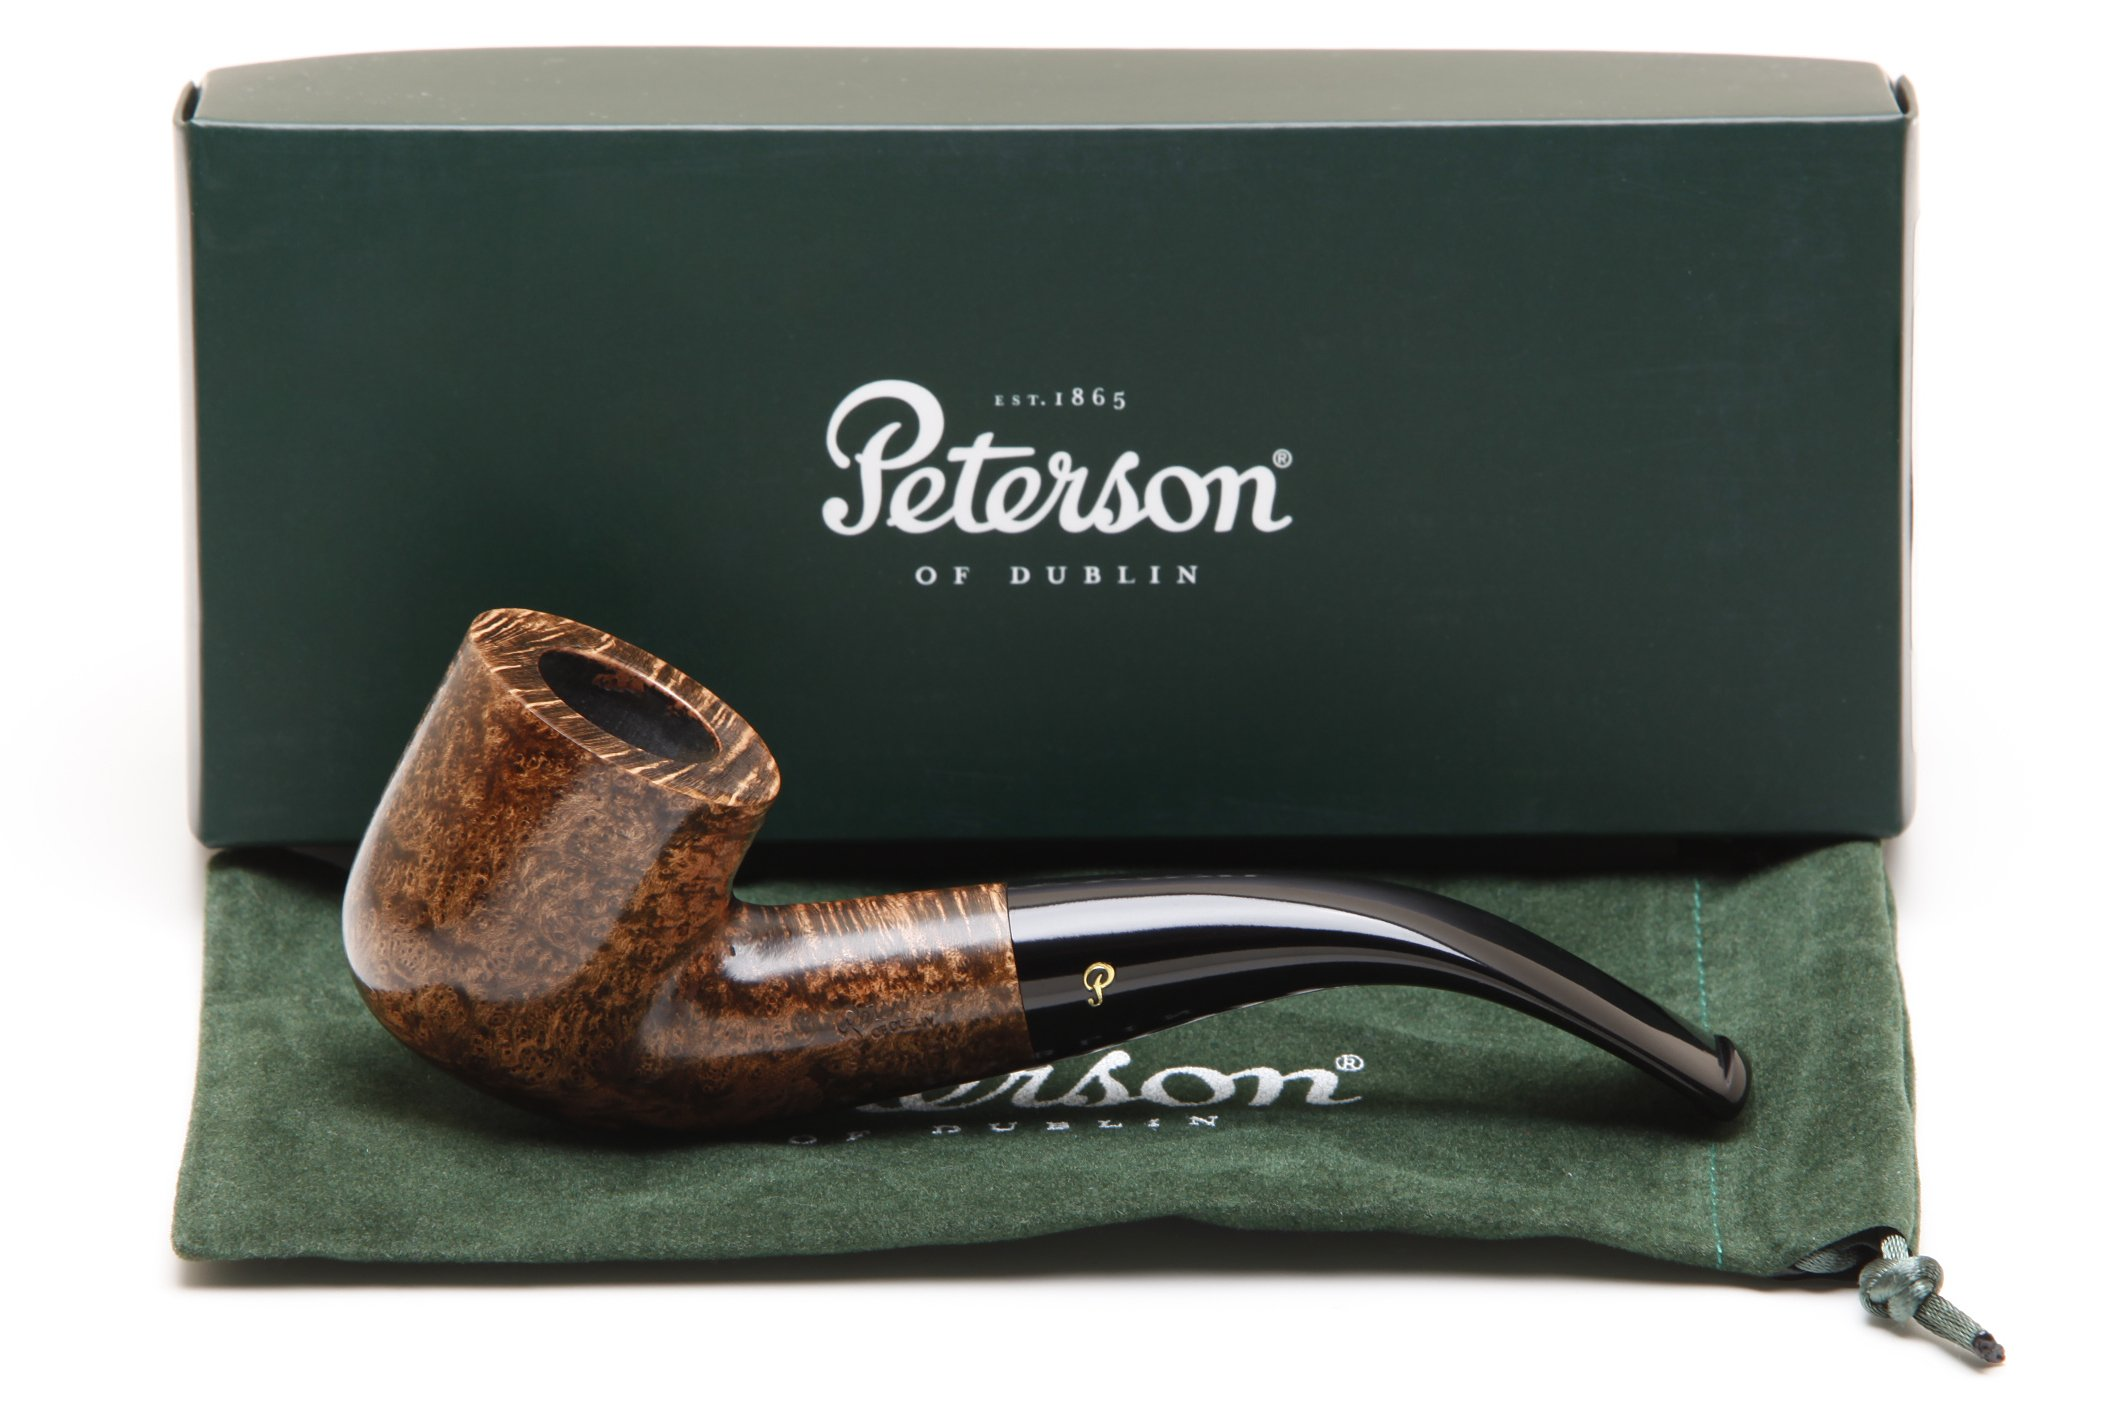 Peterson Shannon Briars 01 Tobacco Pipe Fishtail by Peterson of Dublin